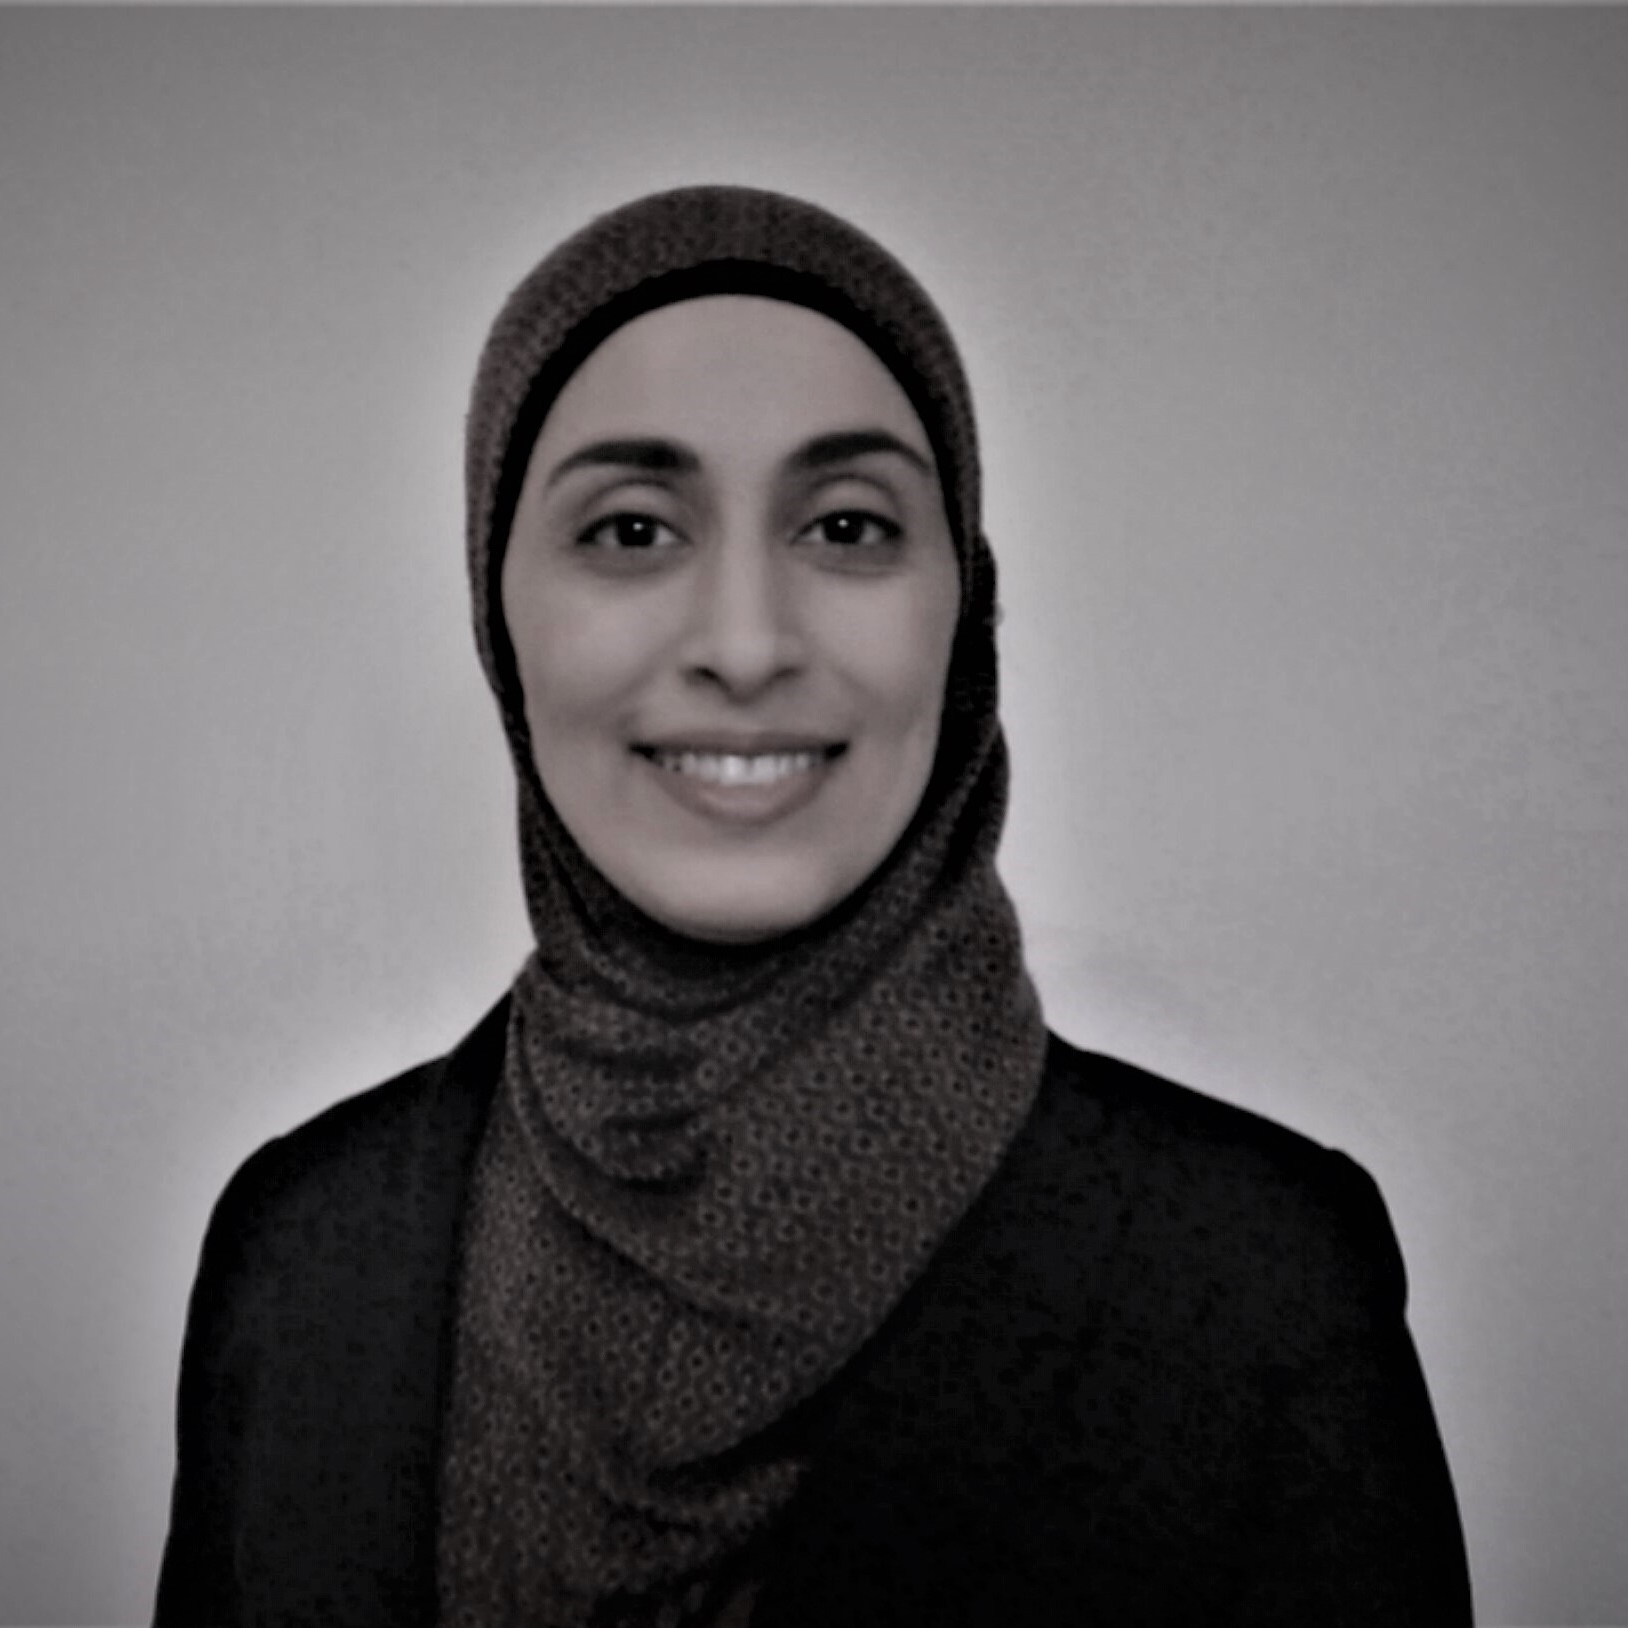 Staff — CAIR New York